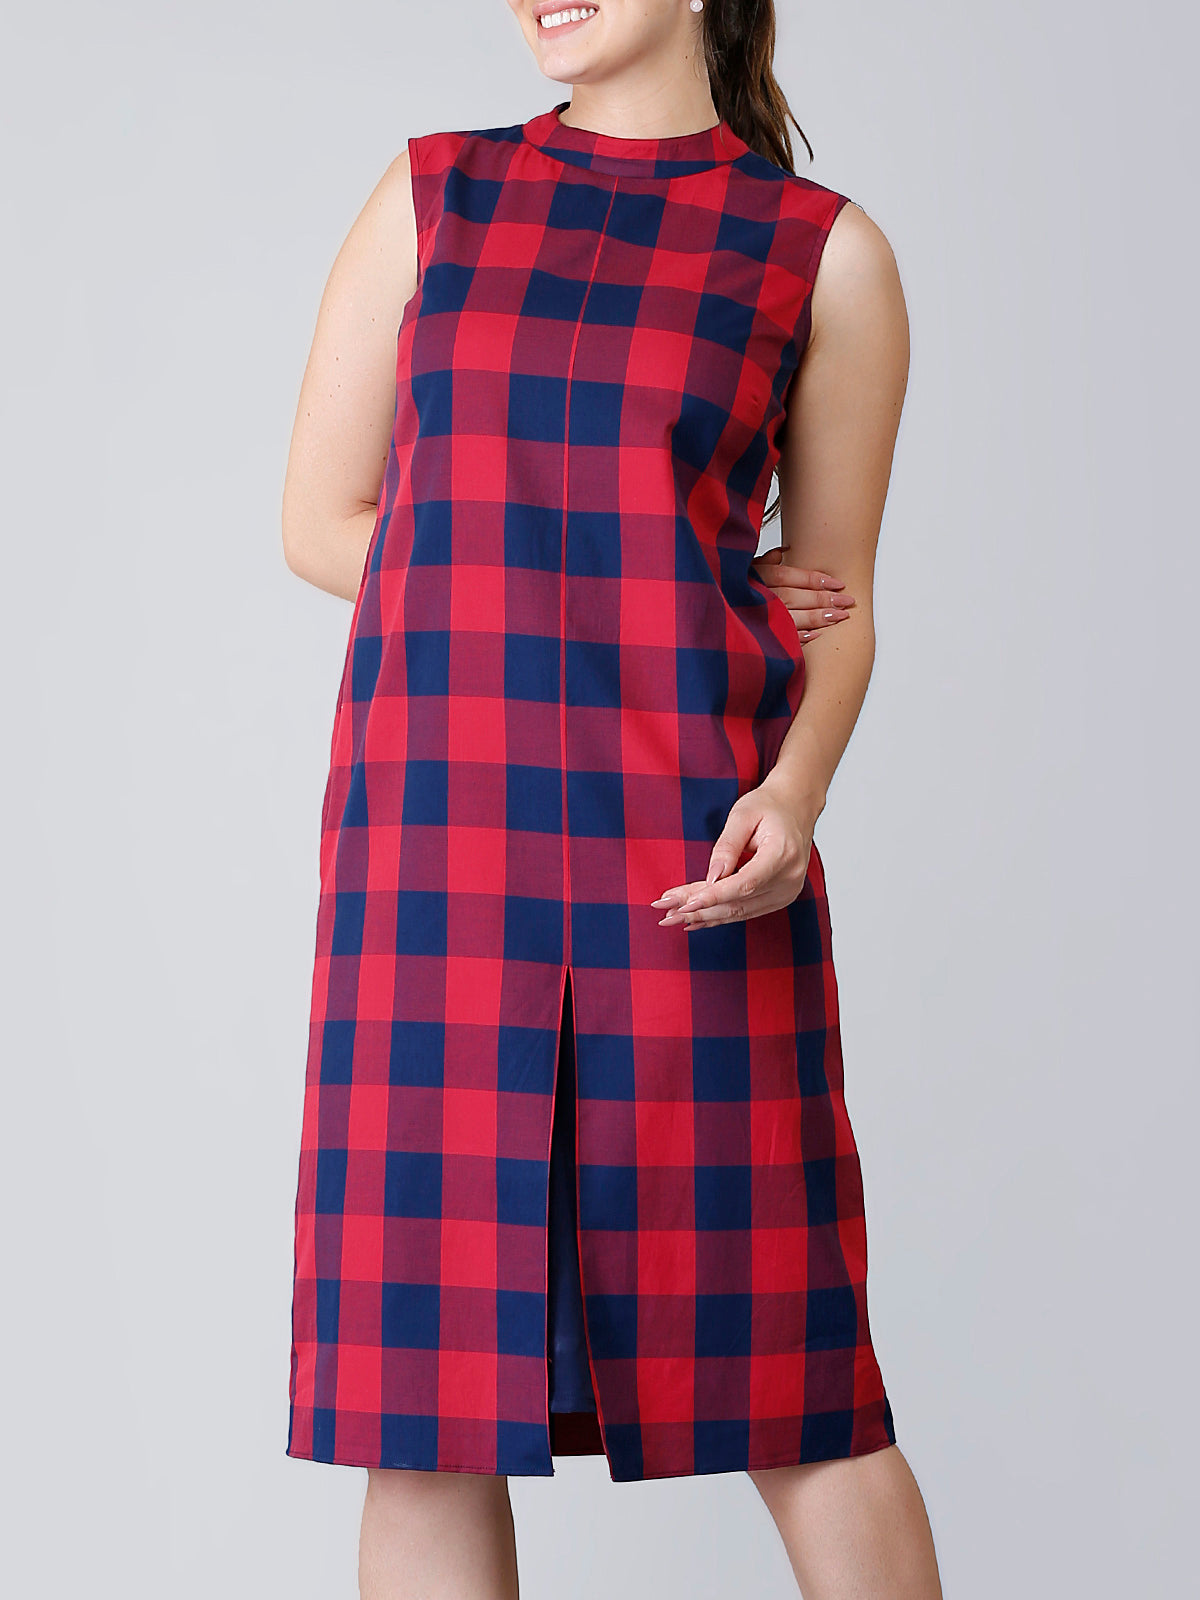 Front Slit Straight Fit Plaid Dress - Red & Navy